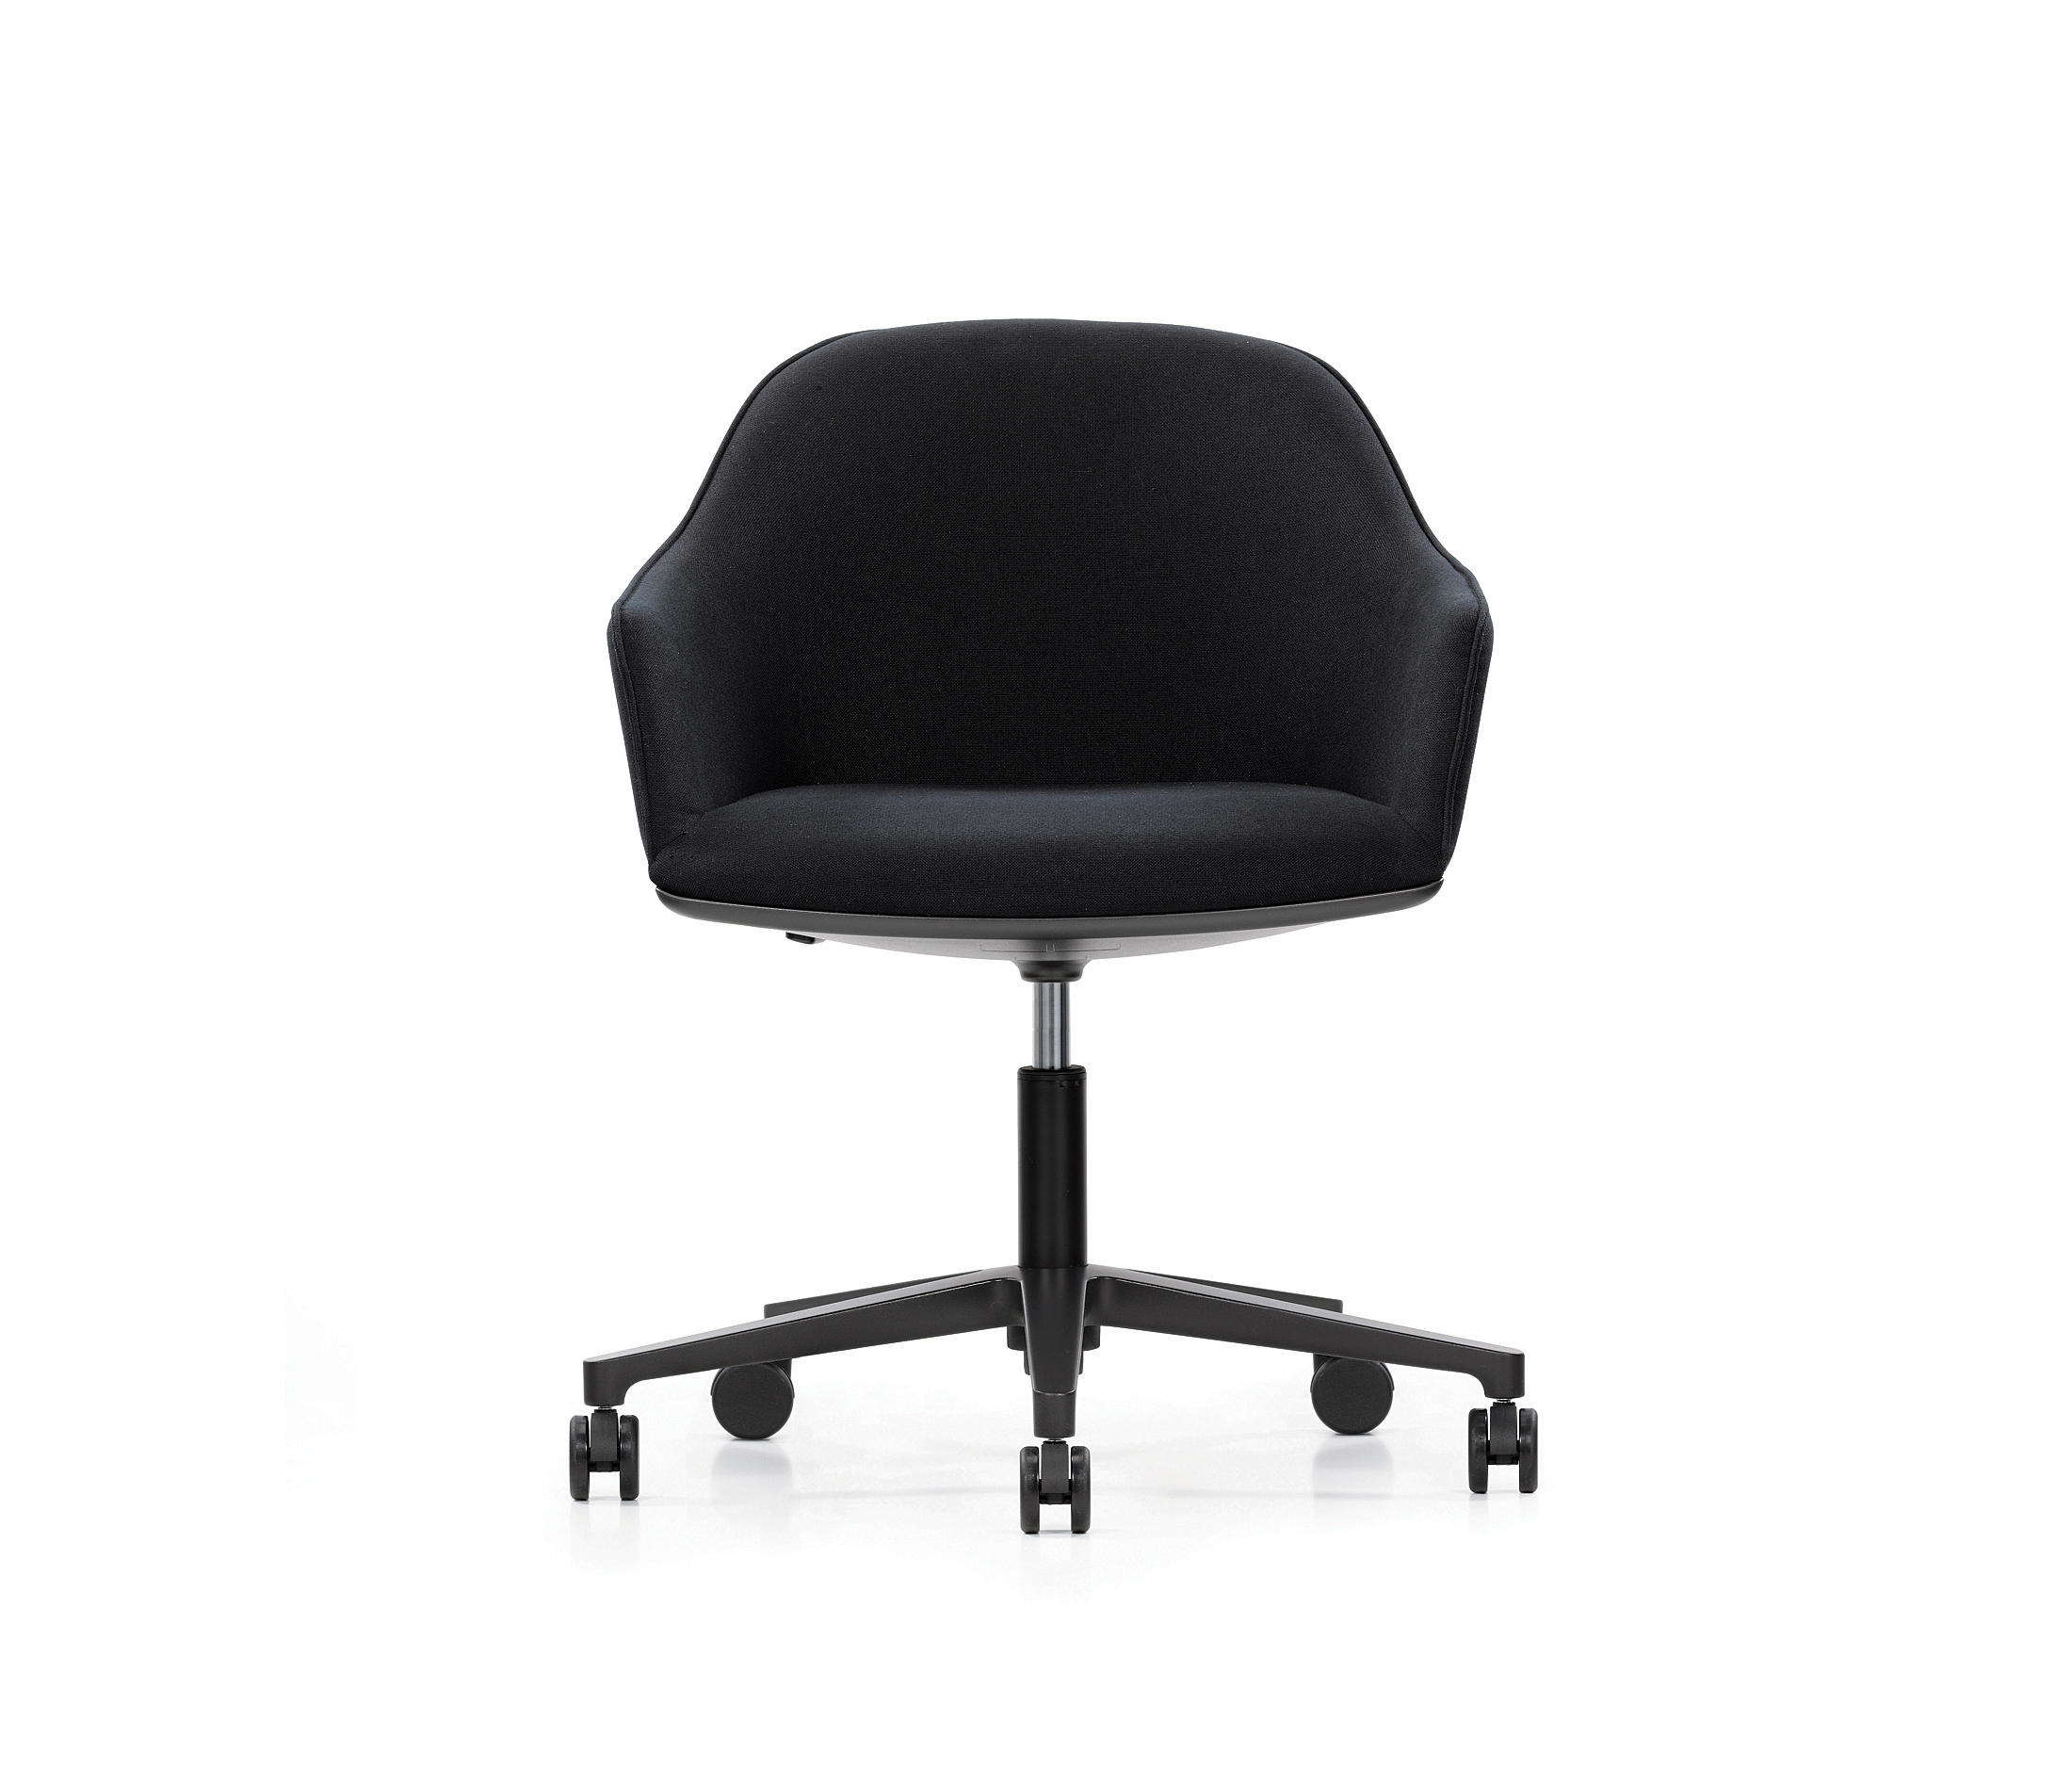 softshell chair management chairs from vitra architonic. Black Bedroom Furniture Sets. Home Design Ideas